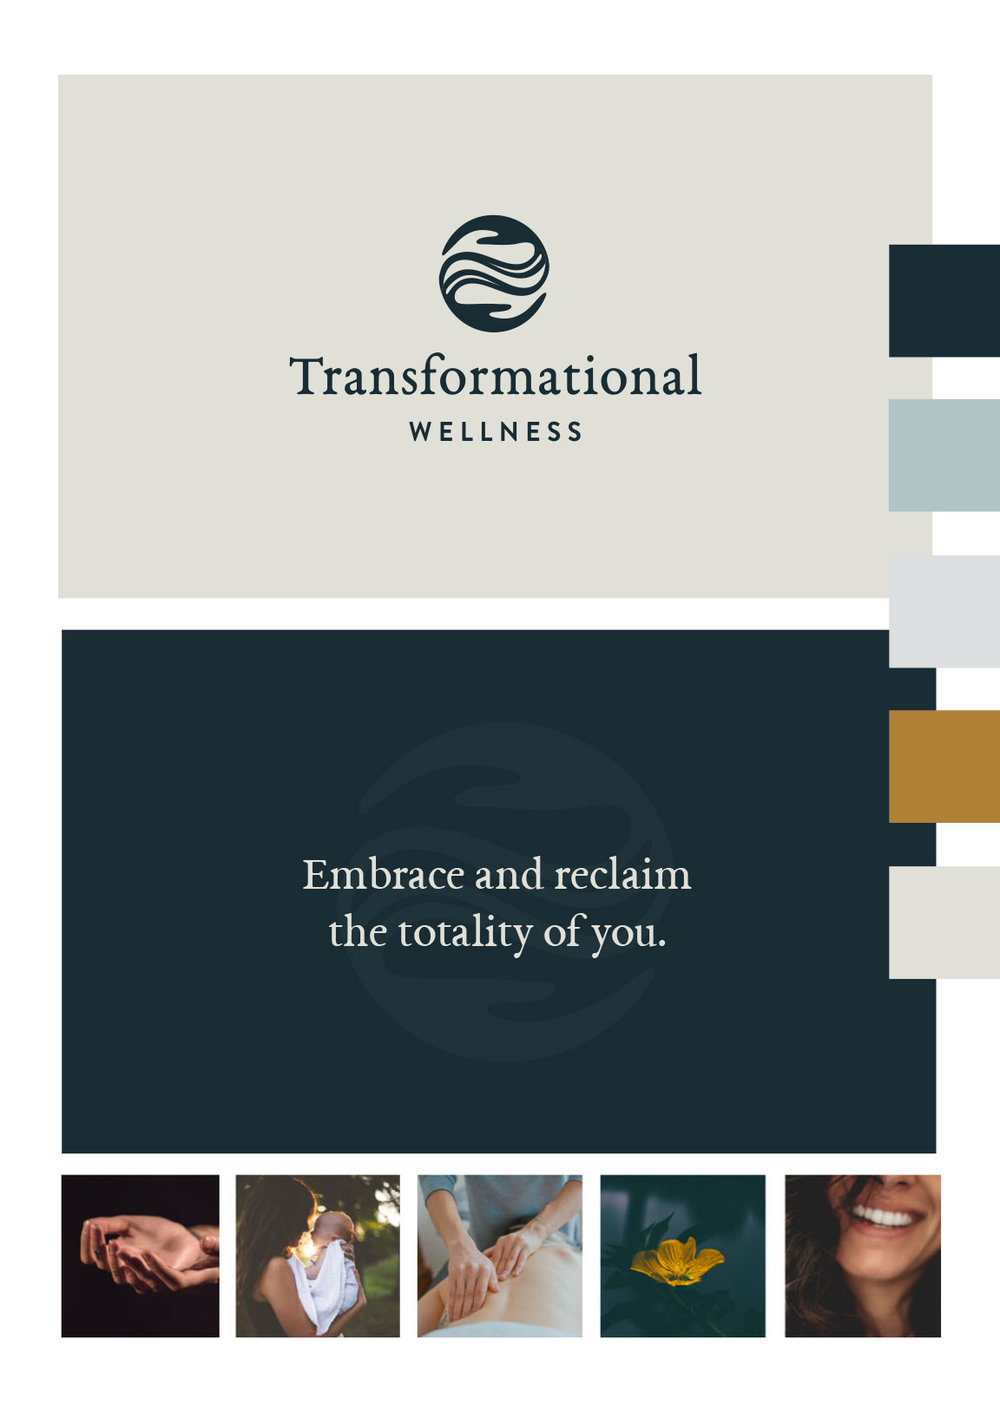 Transformational Wellness Logo Design, Tagline, Color Scheme, and Mood board